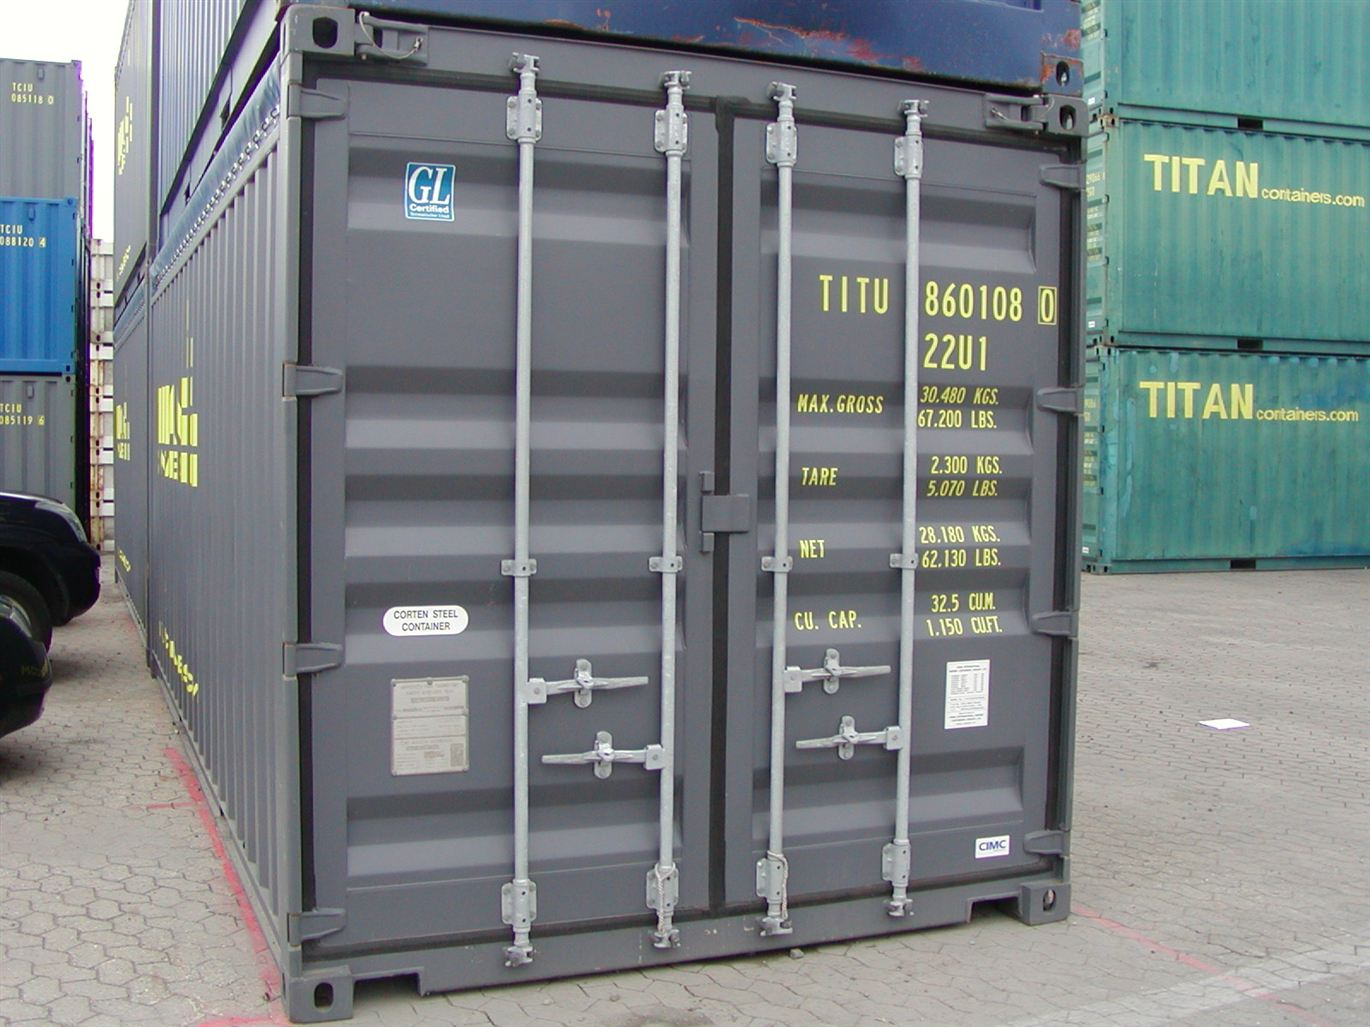 Containers hire sale UK new used rent 10' 20' 40' Refrigerated